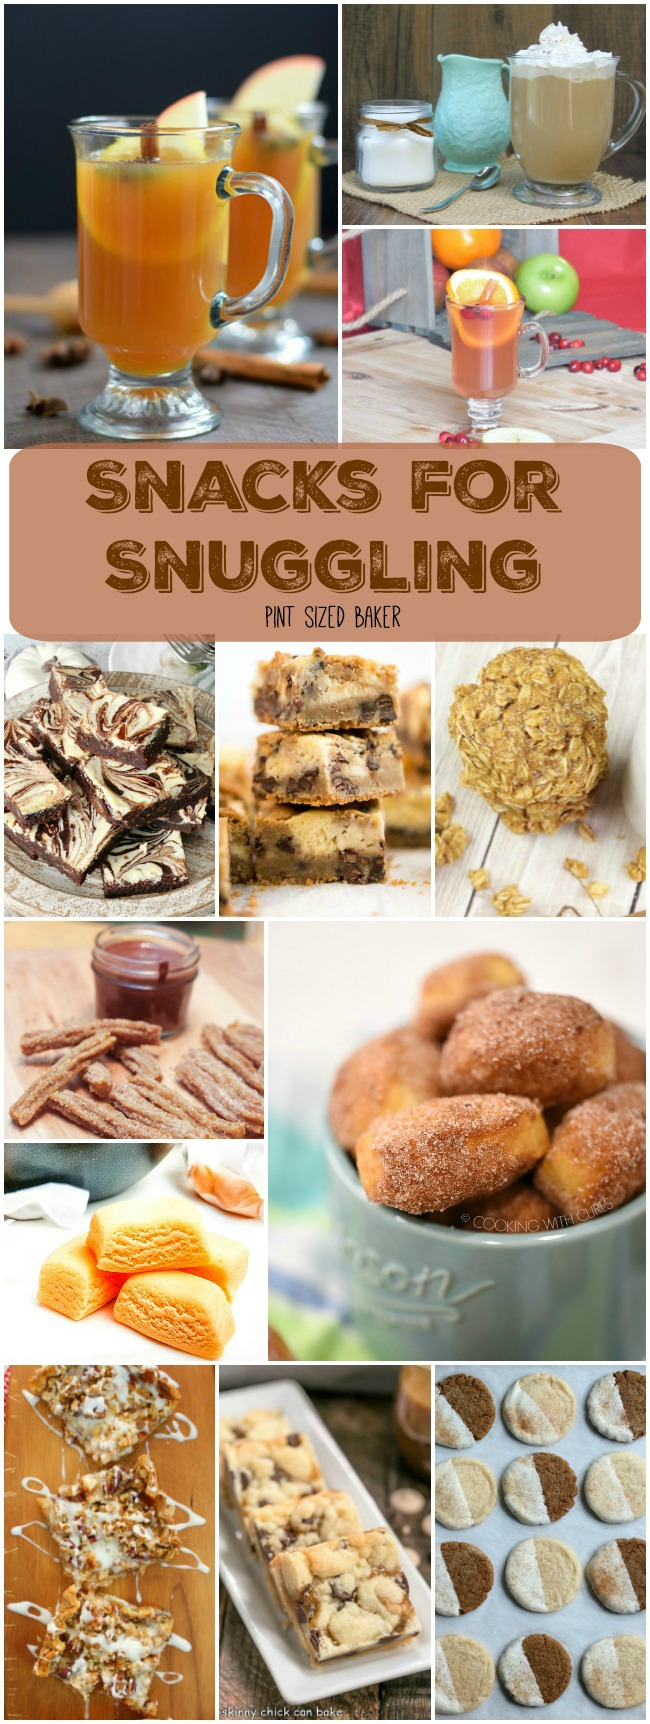 12 perfect snacks for snuggling with the family on the couch to watch TV. Get comfy while the parents enjoy an after dinner drink and the kids nosh on some yummy dessert.